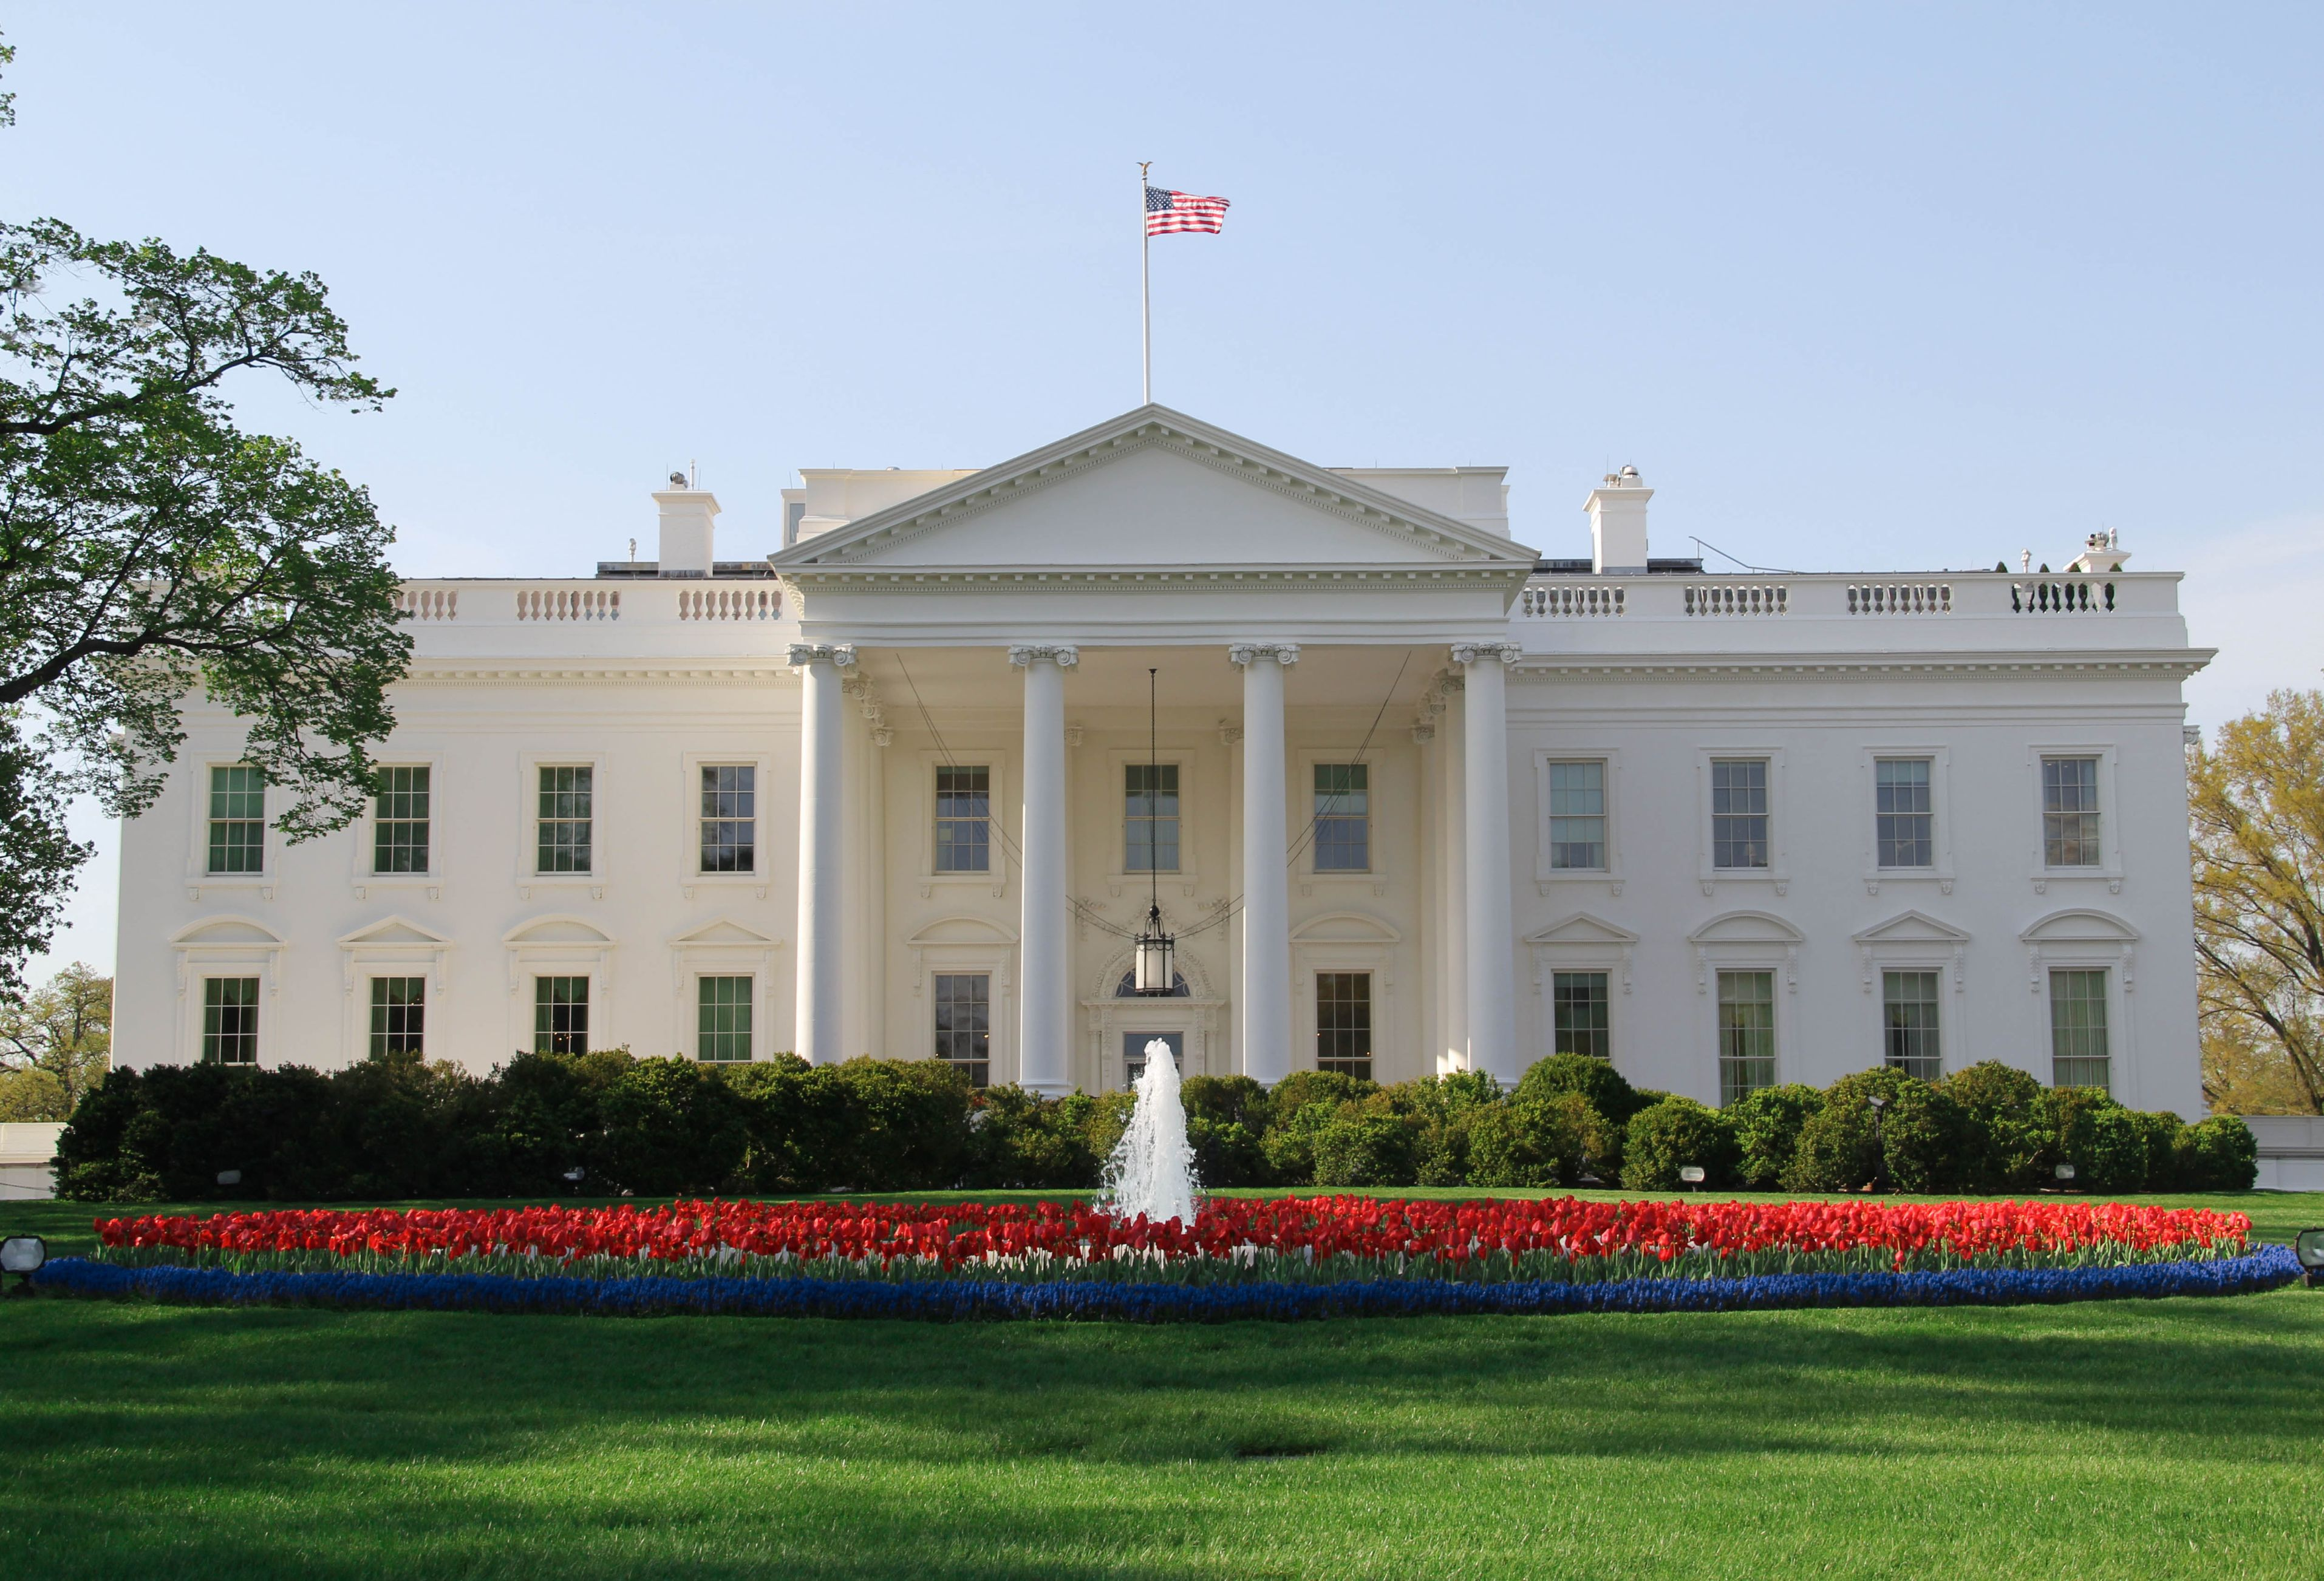 The White House: Visitor's Guide, Tours, Tickets & More